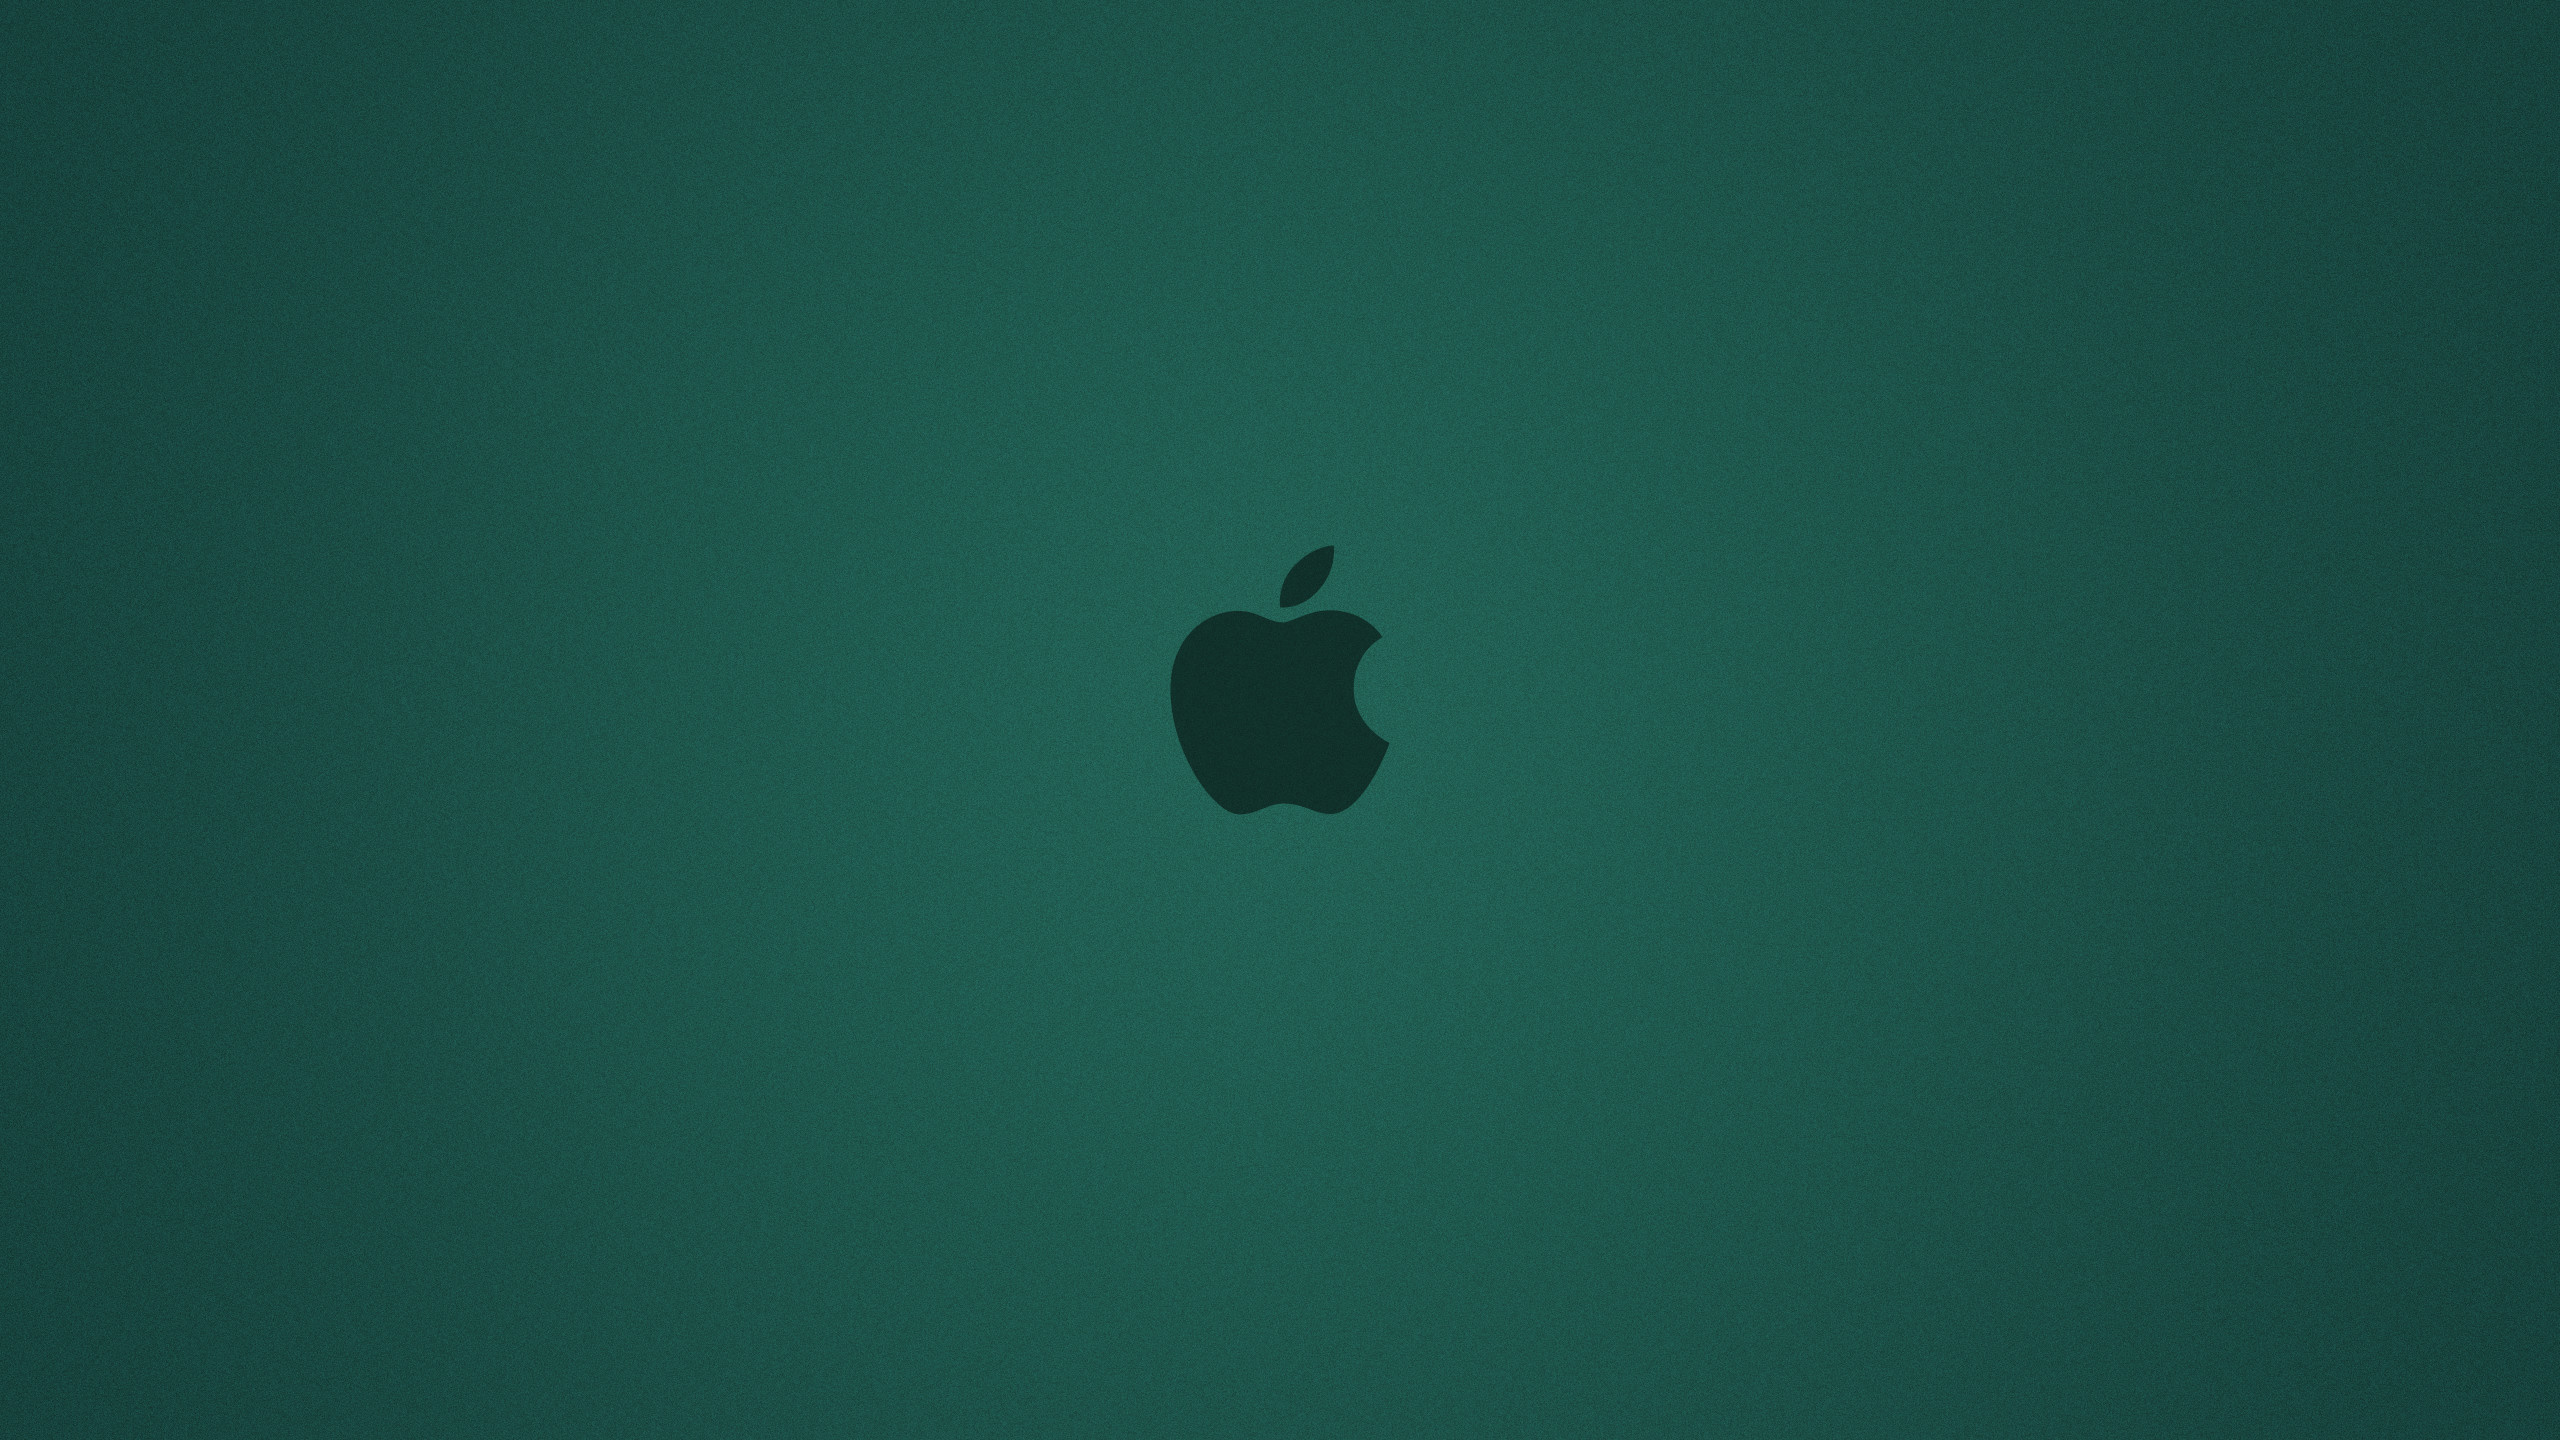 Cyan Apple Background YouTube Channel Cover